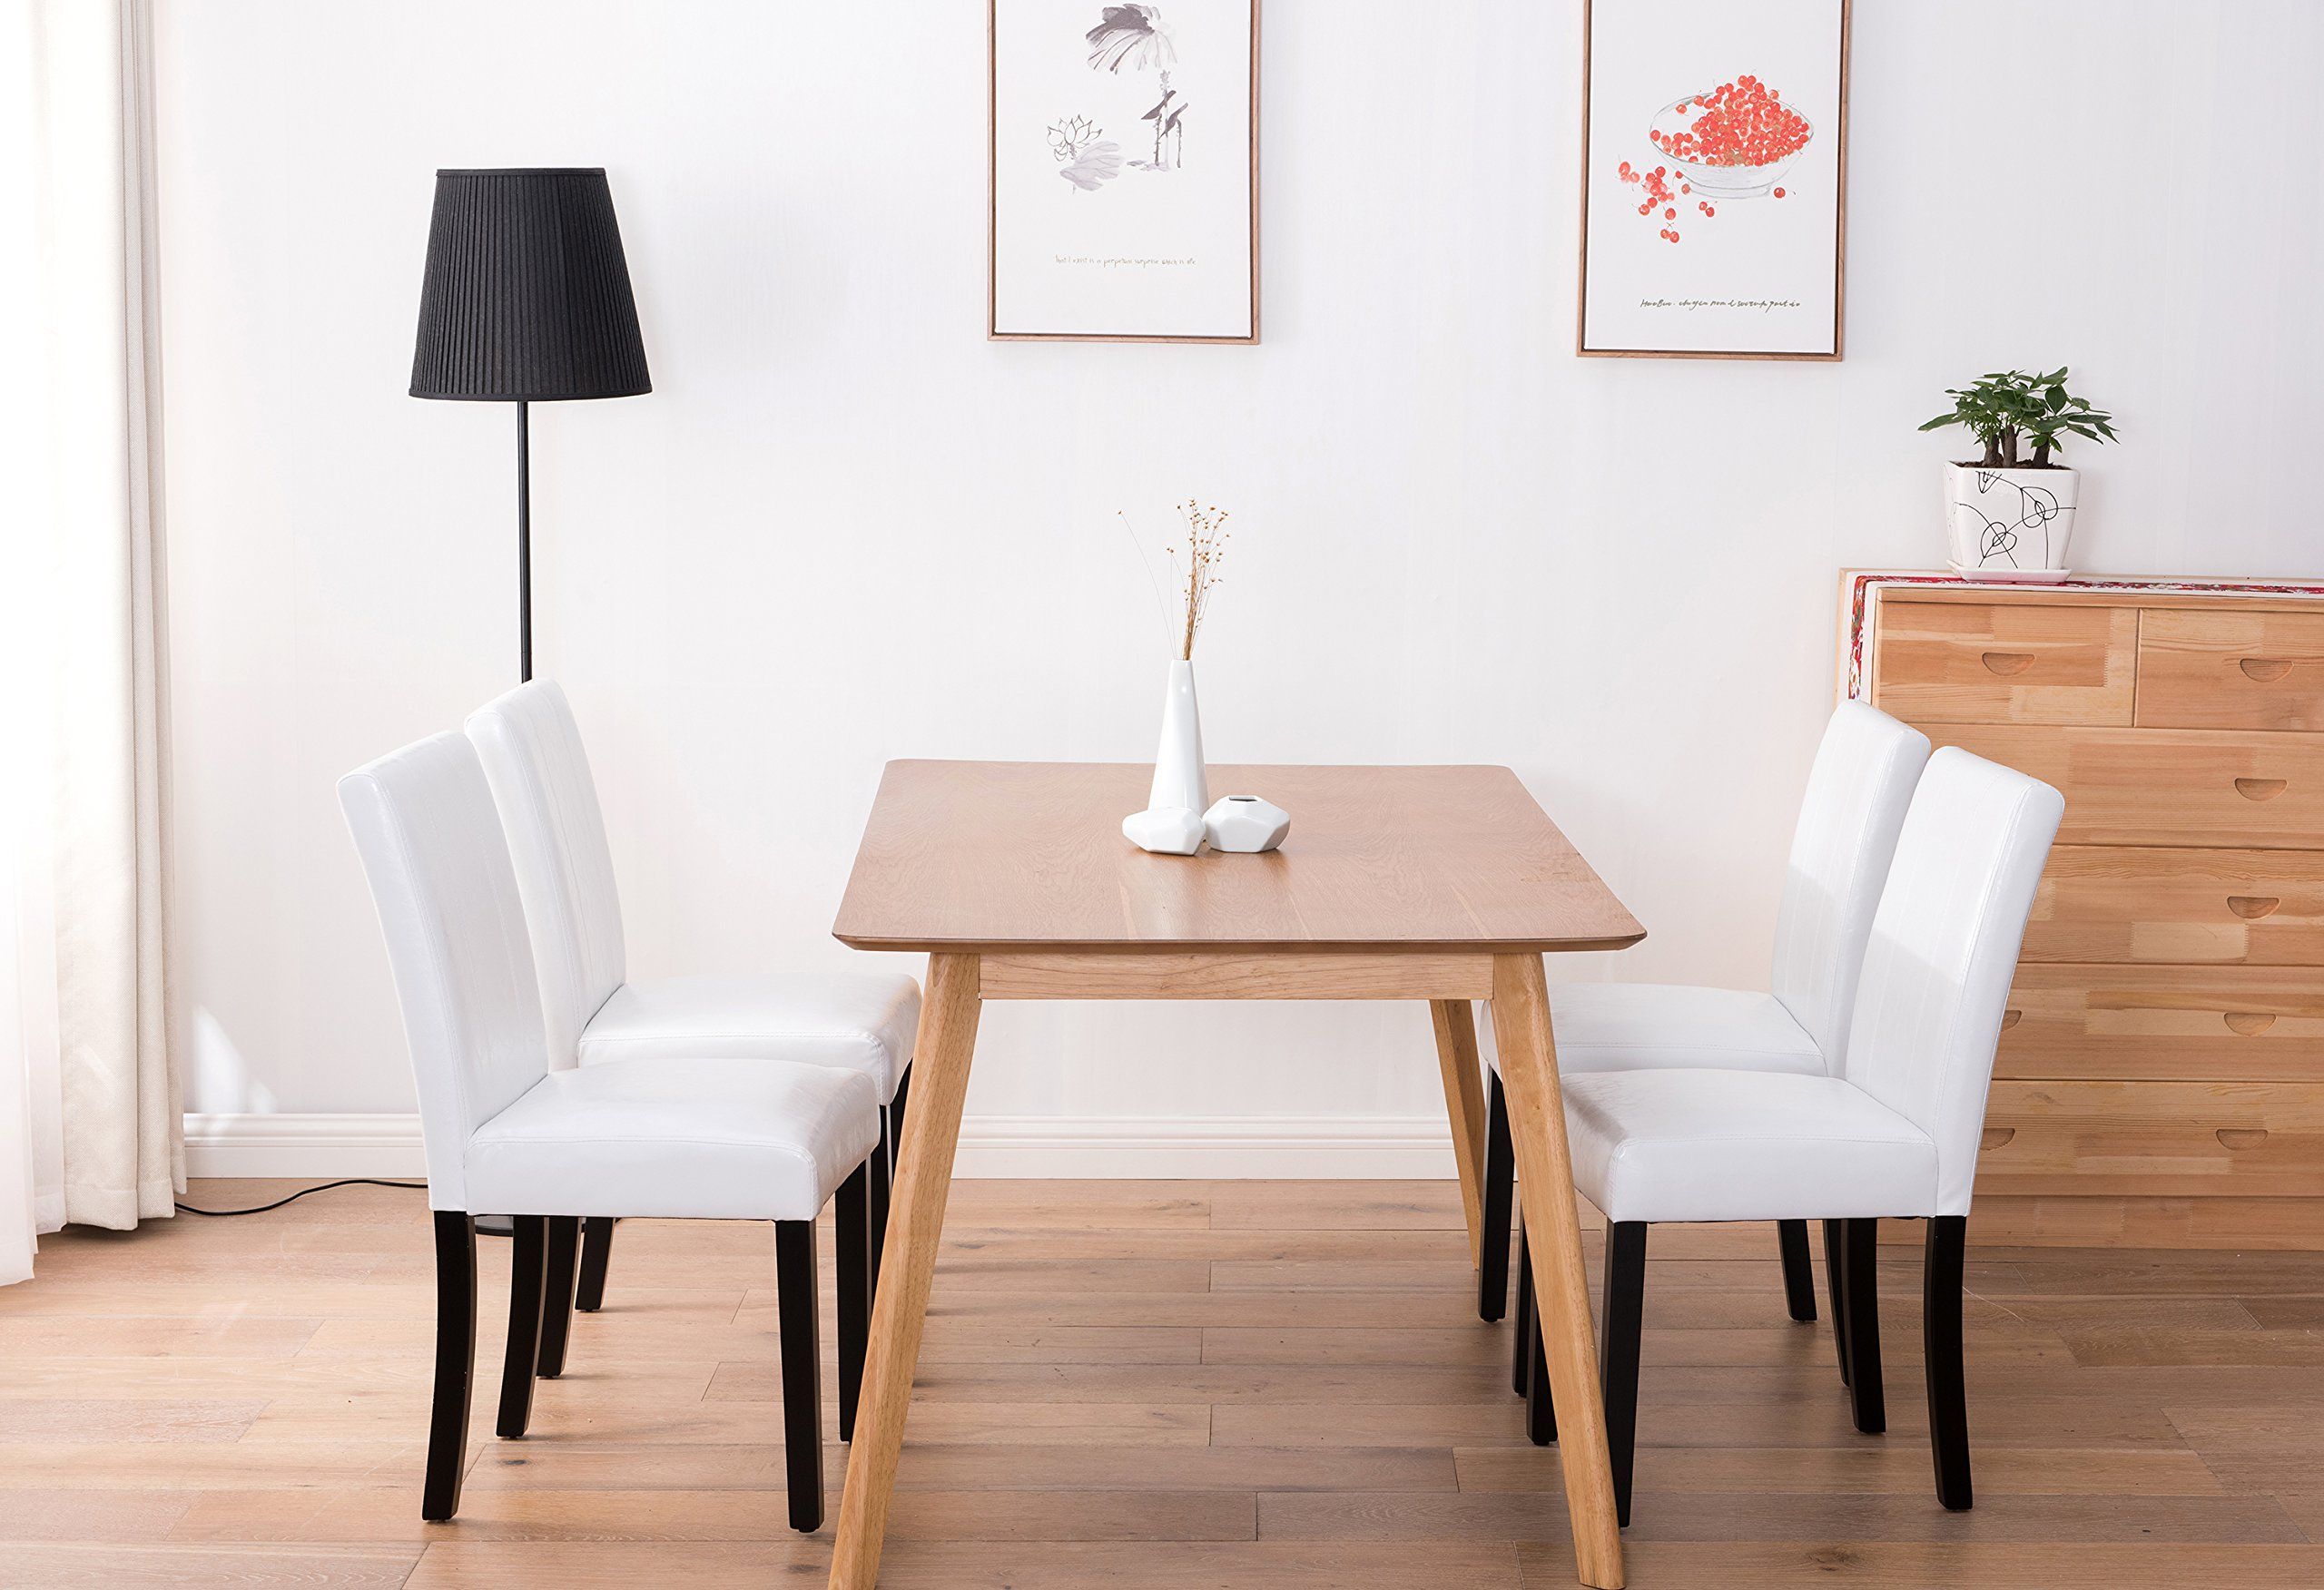 Pu leather Dining Chairs Set of 4 PerHome Chair Dining